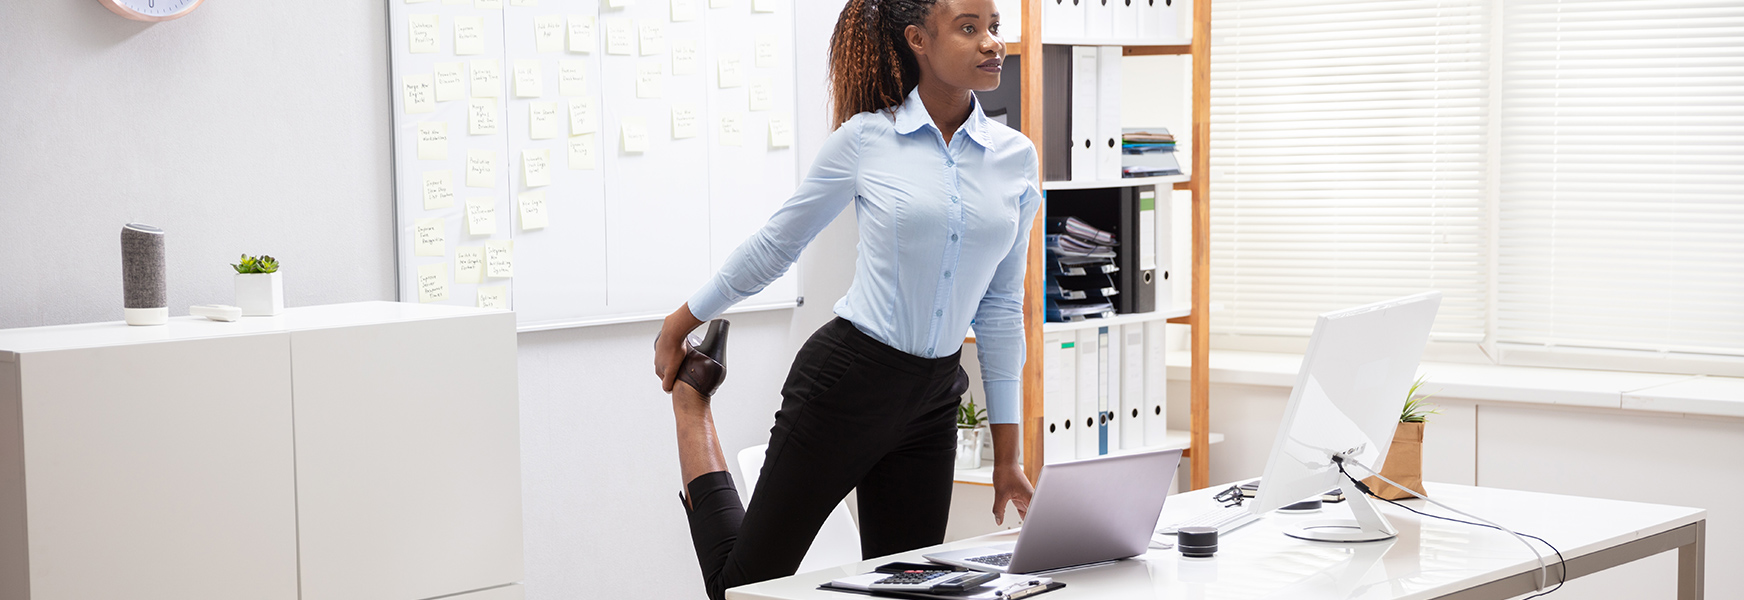 Young Businesswoman Doing Leg Stretches at Desk